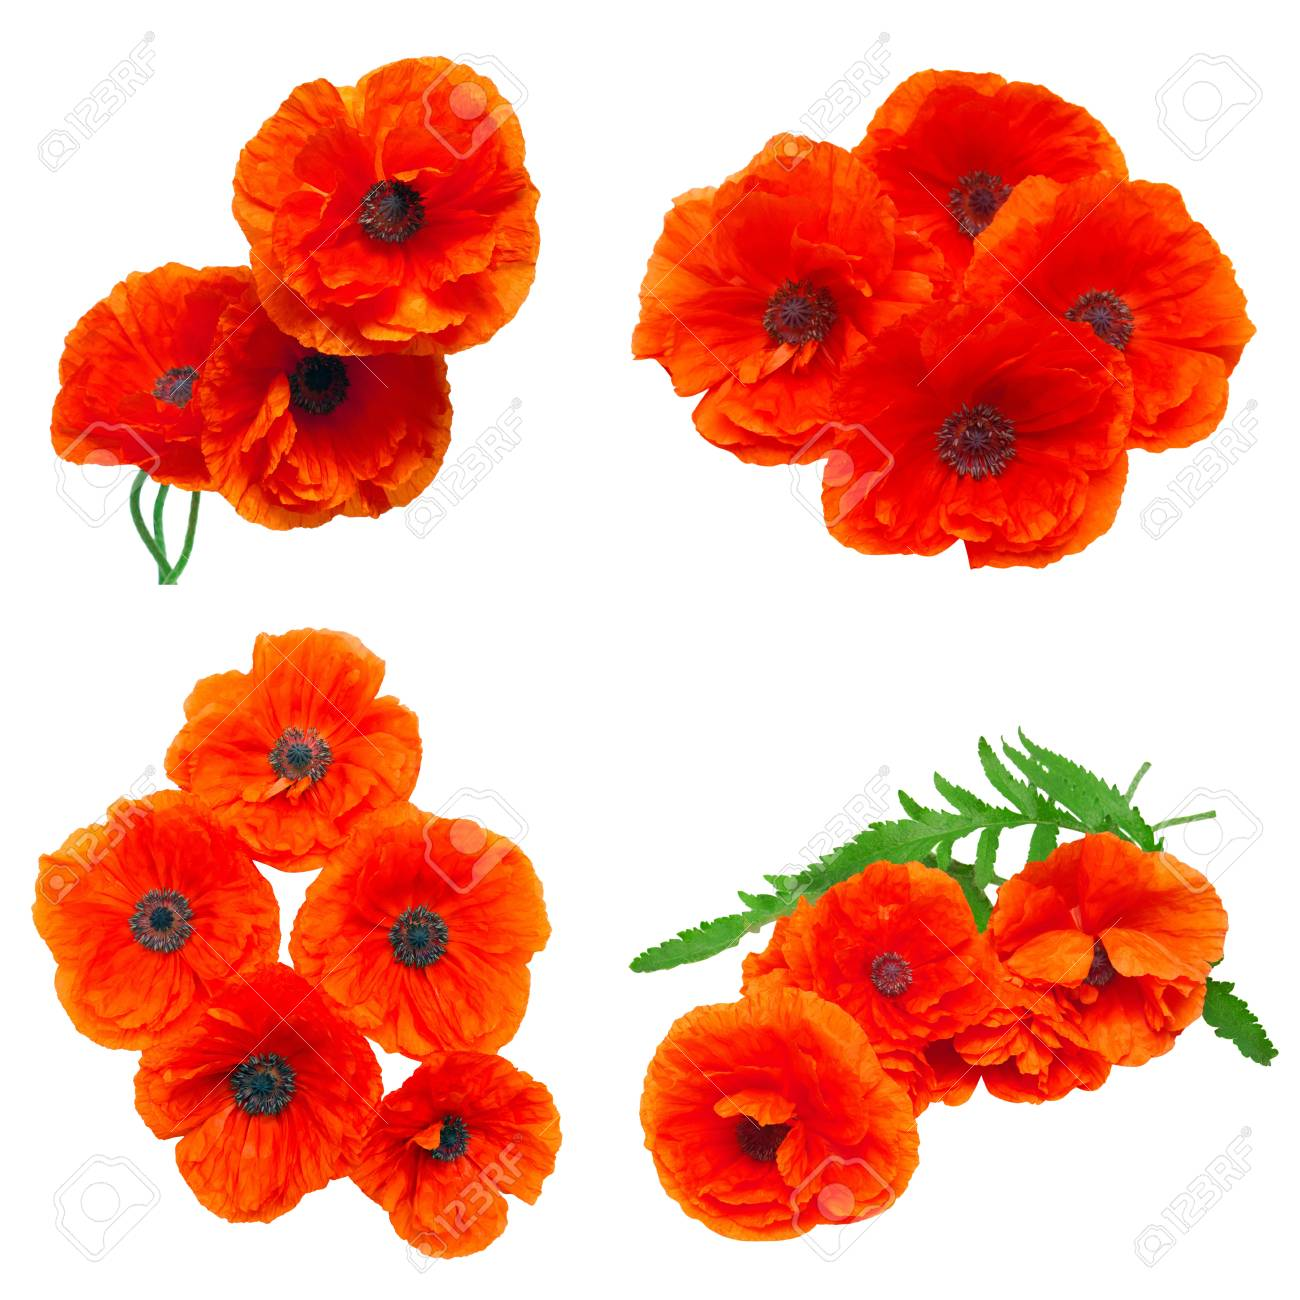 Collection Poppy Red Flowers Isolated On White Background Flat